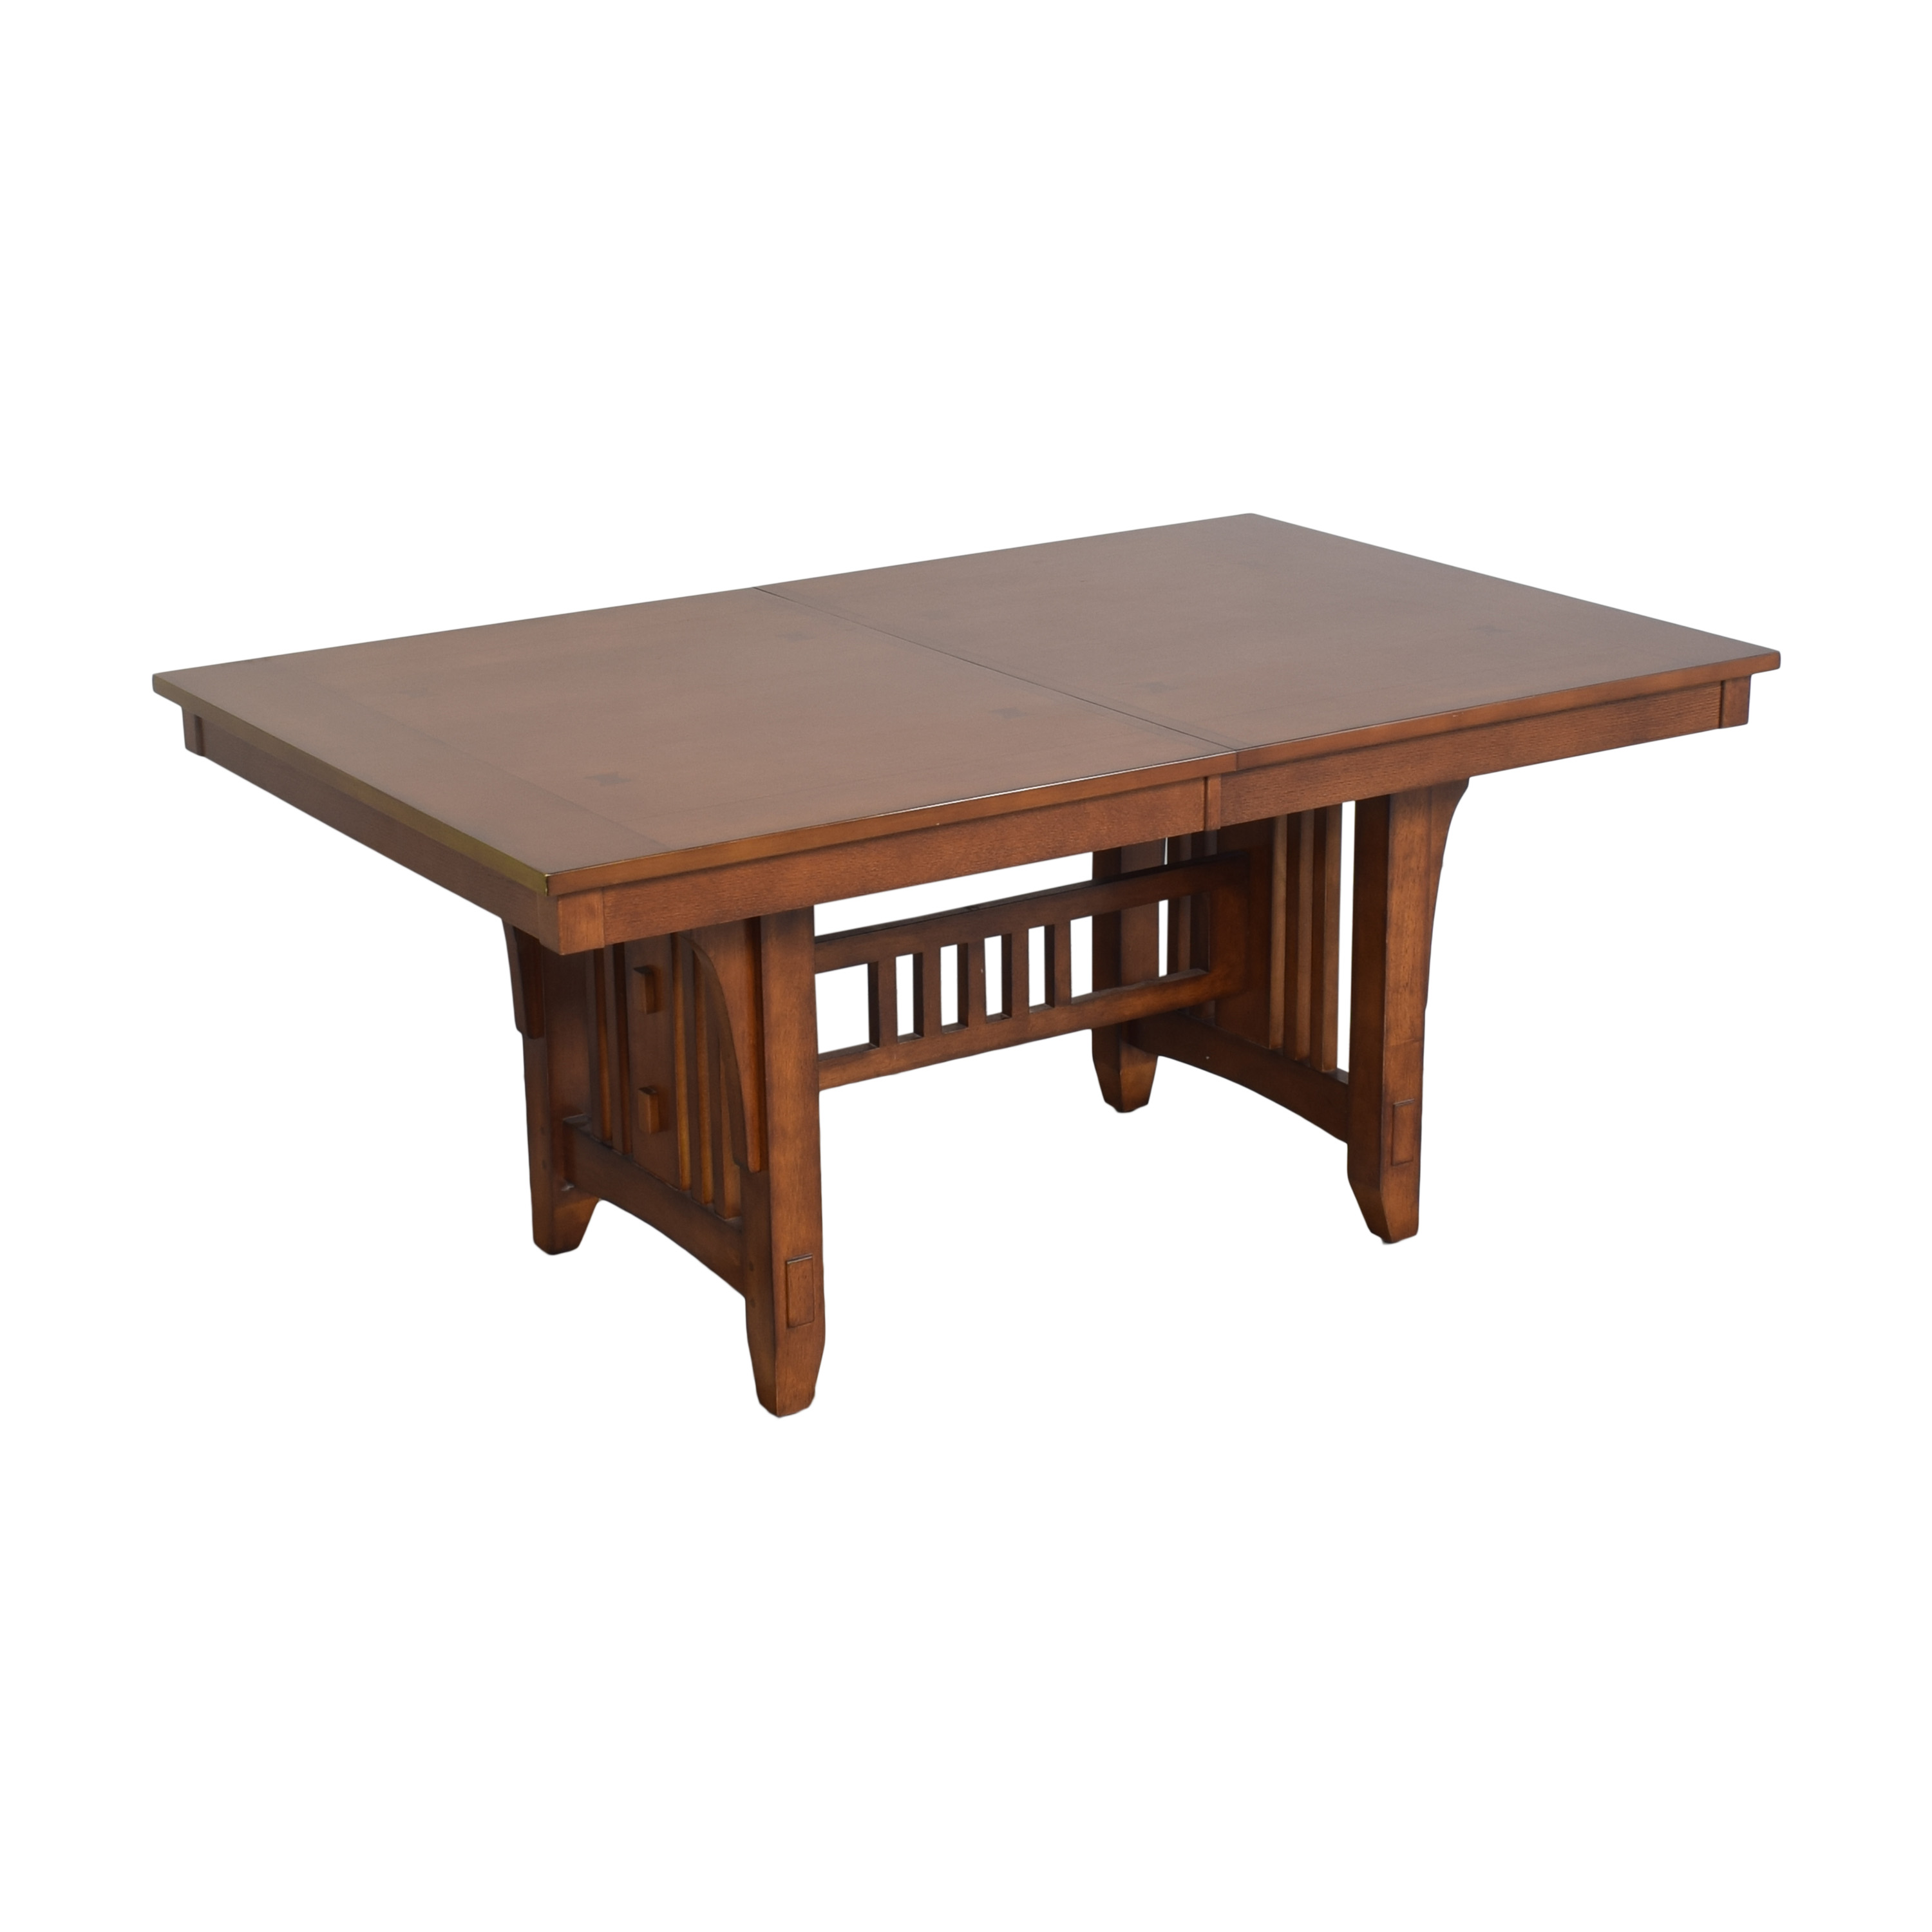 Green River Furniture Green River Mission Style Extendable Dining Table nyc